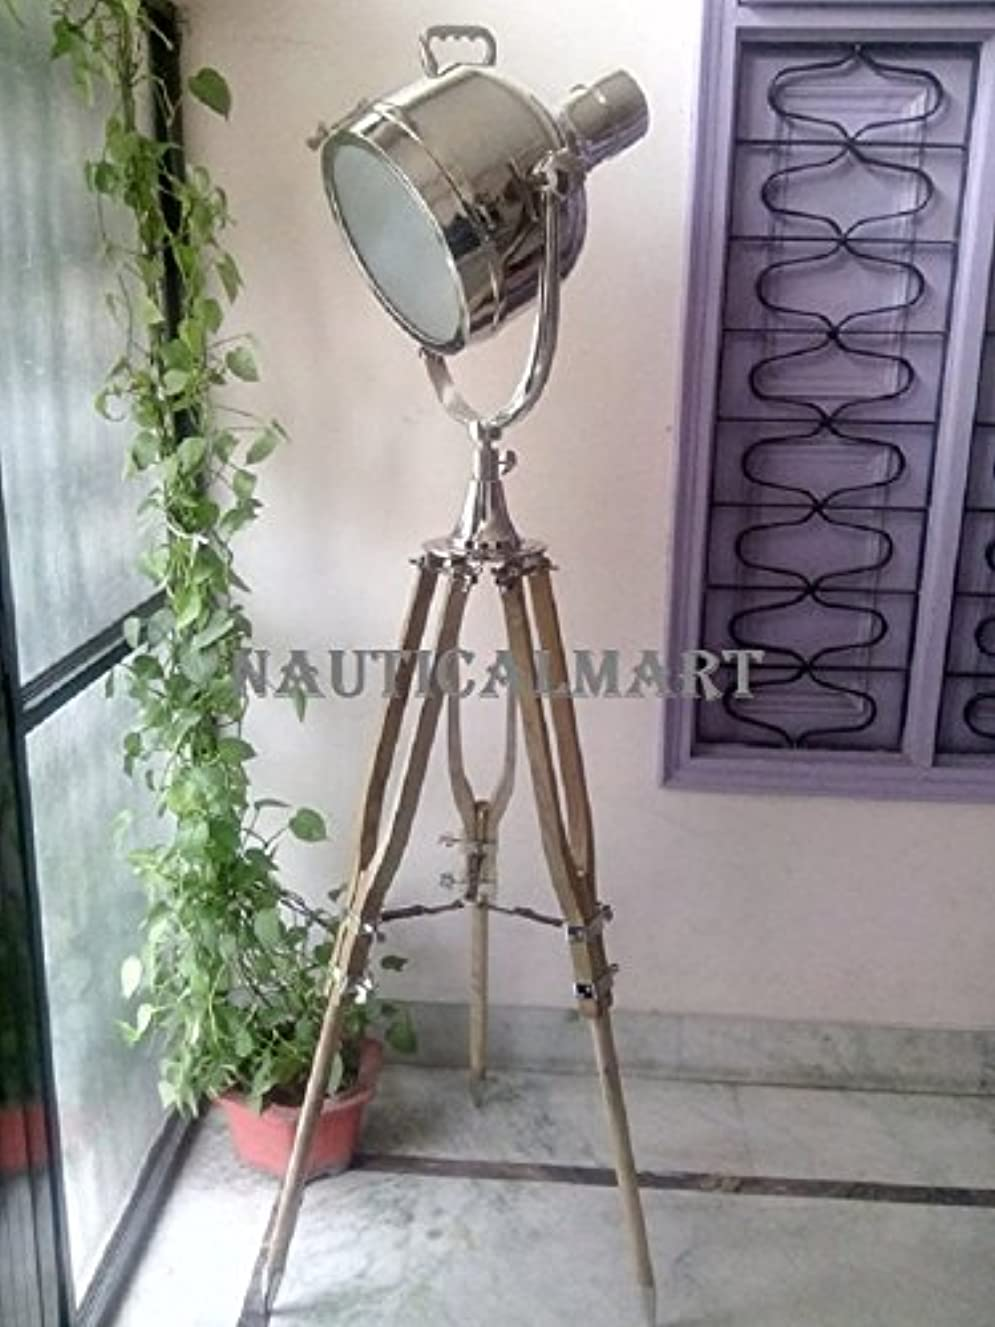 Nauticalmart Tripod Spot Light/Tripod Floor Lamp/Nautical Floor Lamp/Nickel Plated Floor Lamp